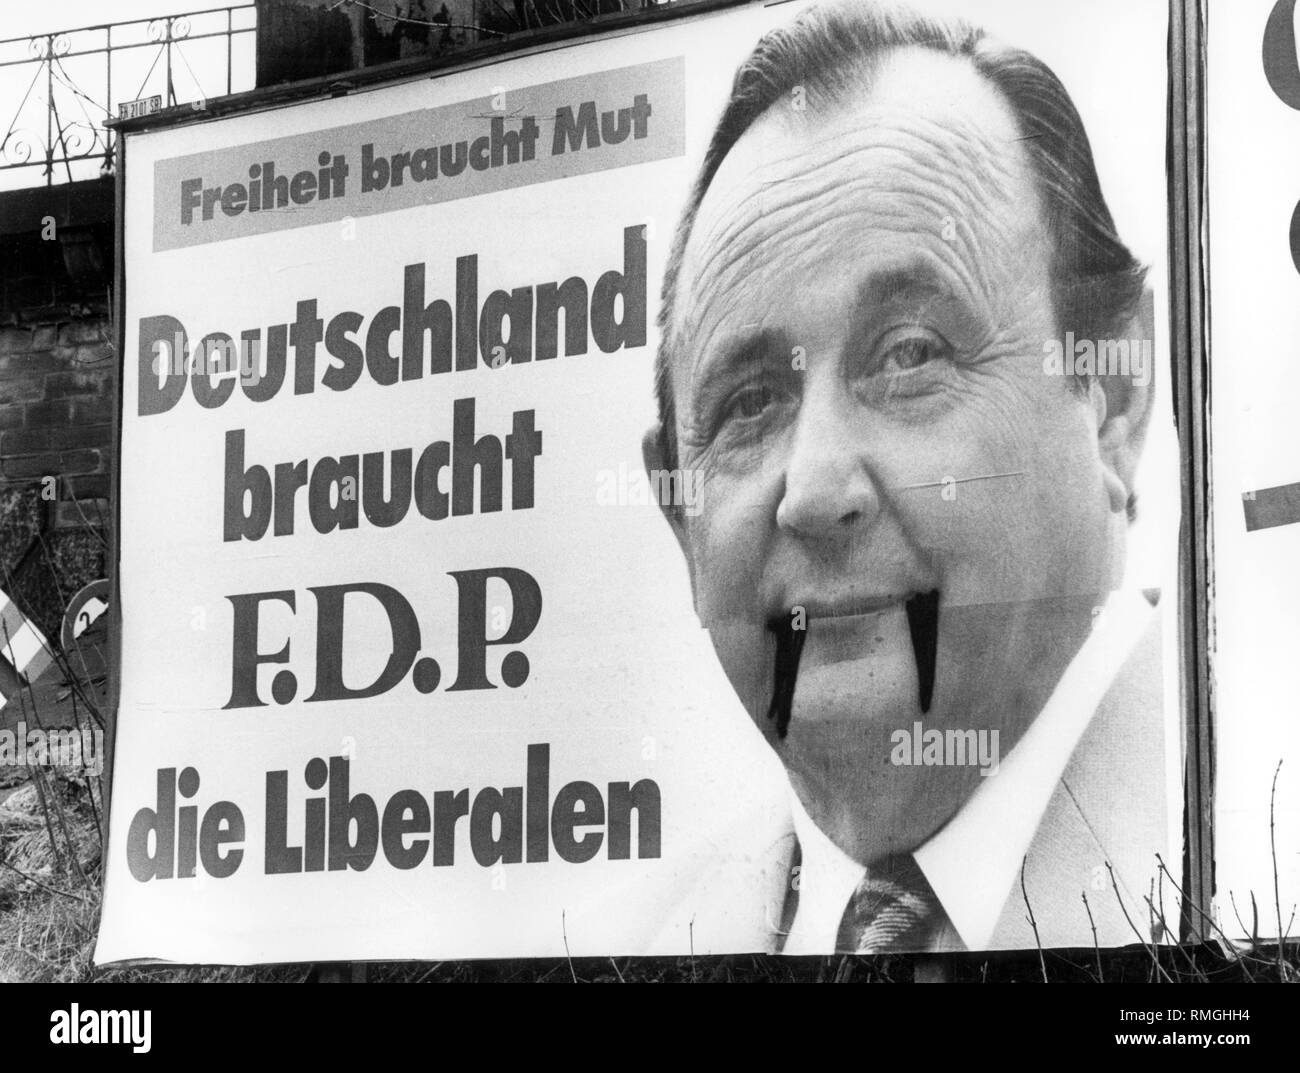 An election poster of the FDP was defaced. On the image of the FDP chairman Genscher vampire teeth were painted. The election poster of the FDP advertises 'Freedom needs courage, Germany needs F.D.P. the Liberals'. - Stock Image